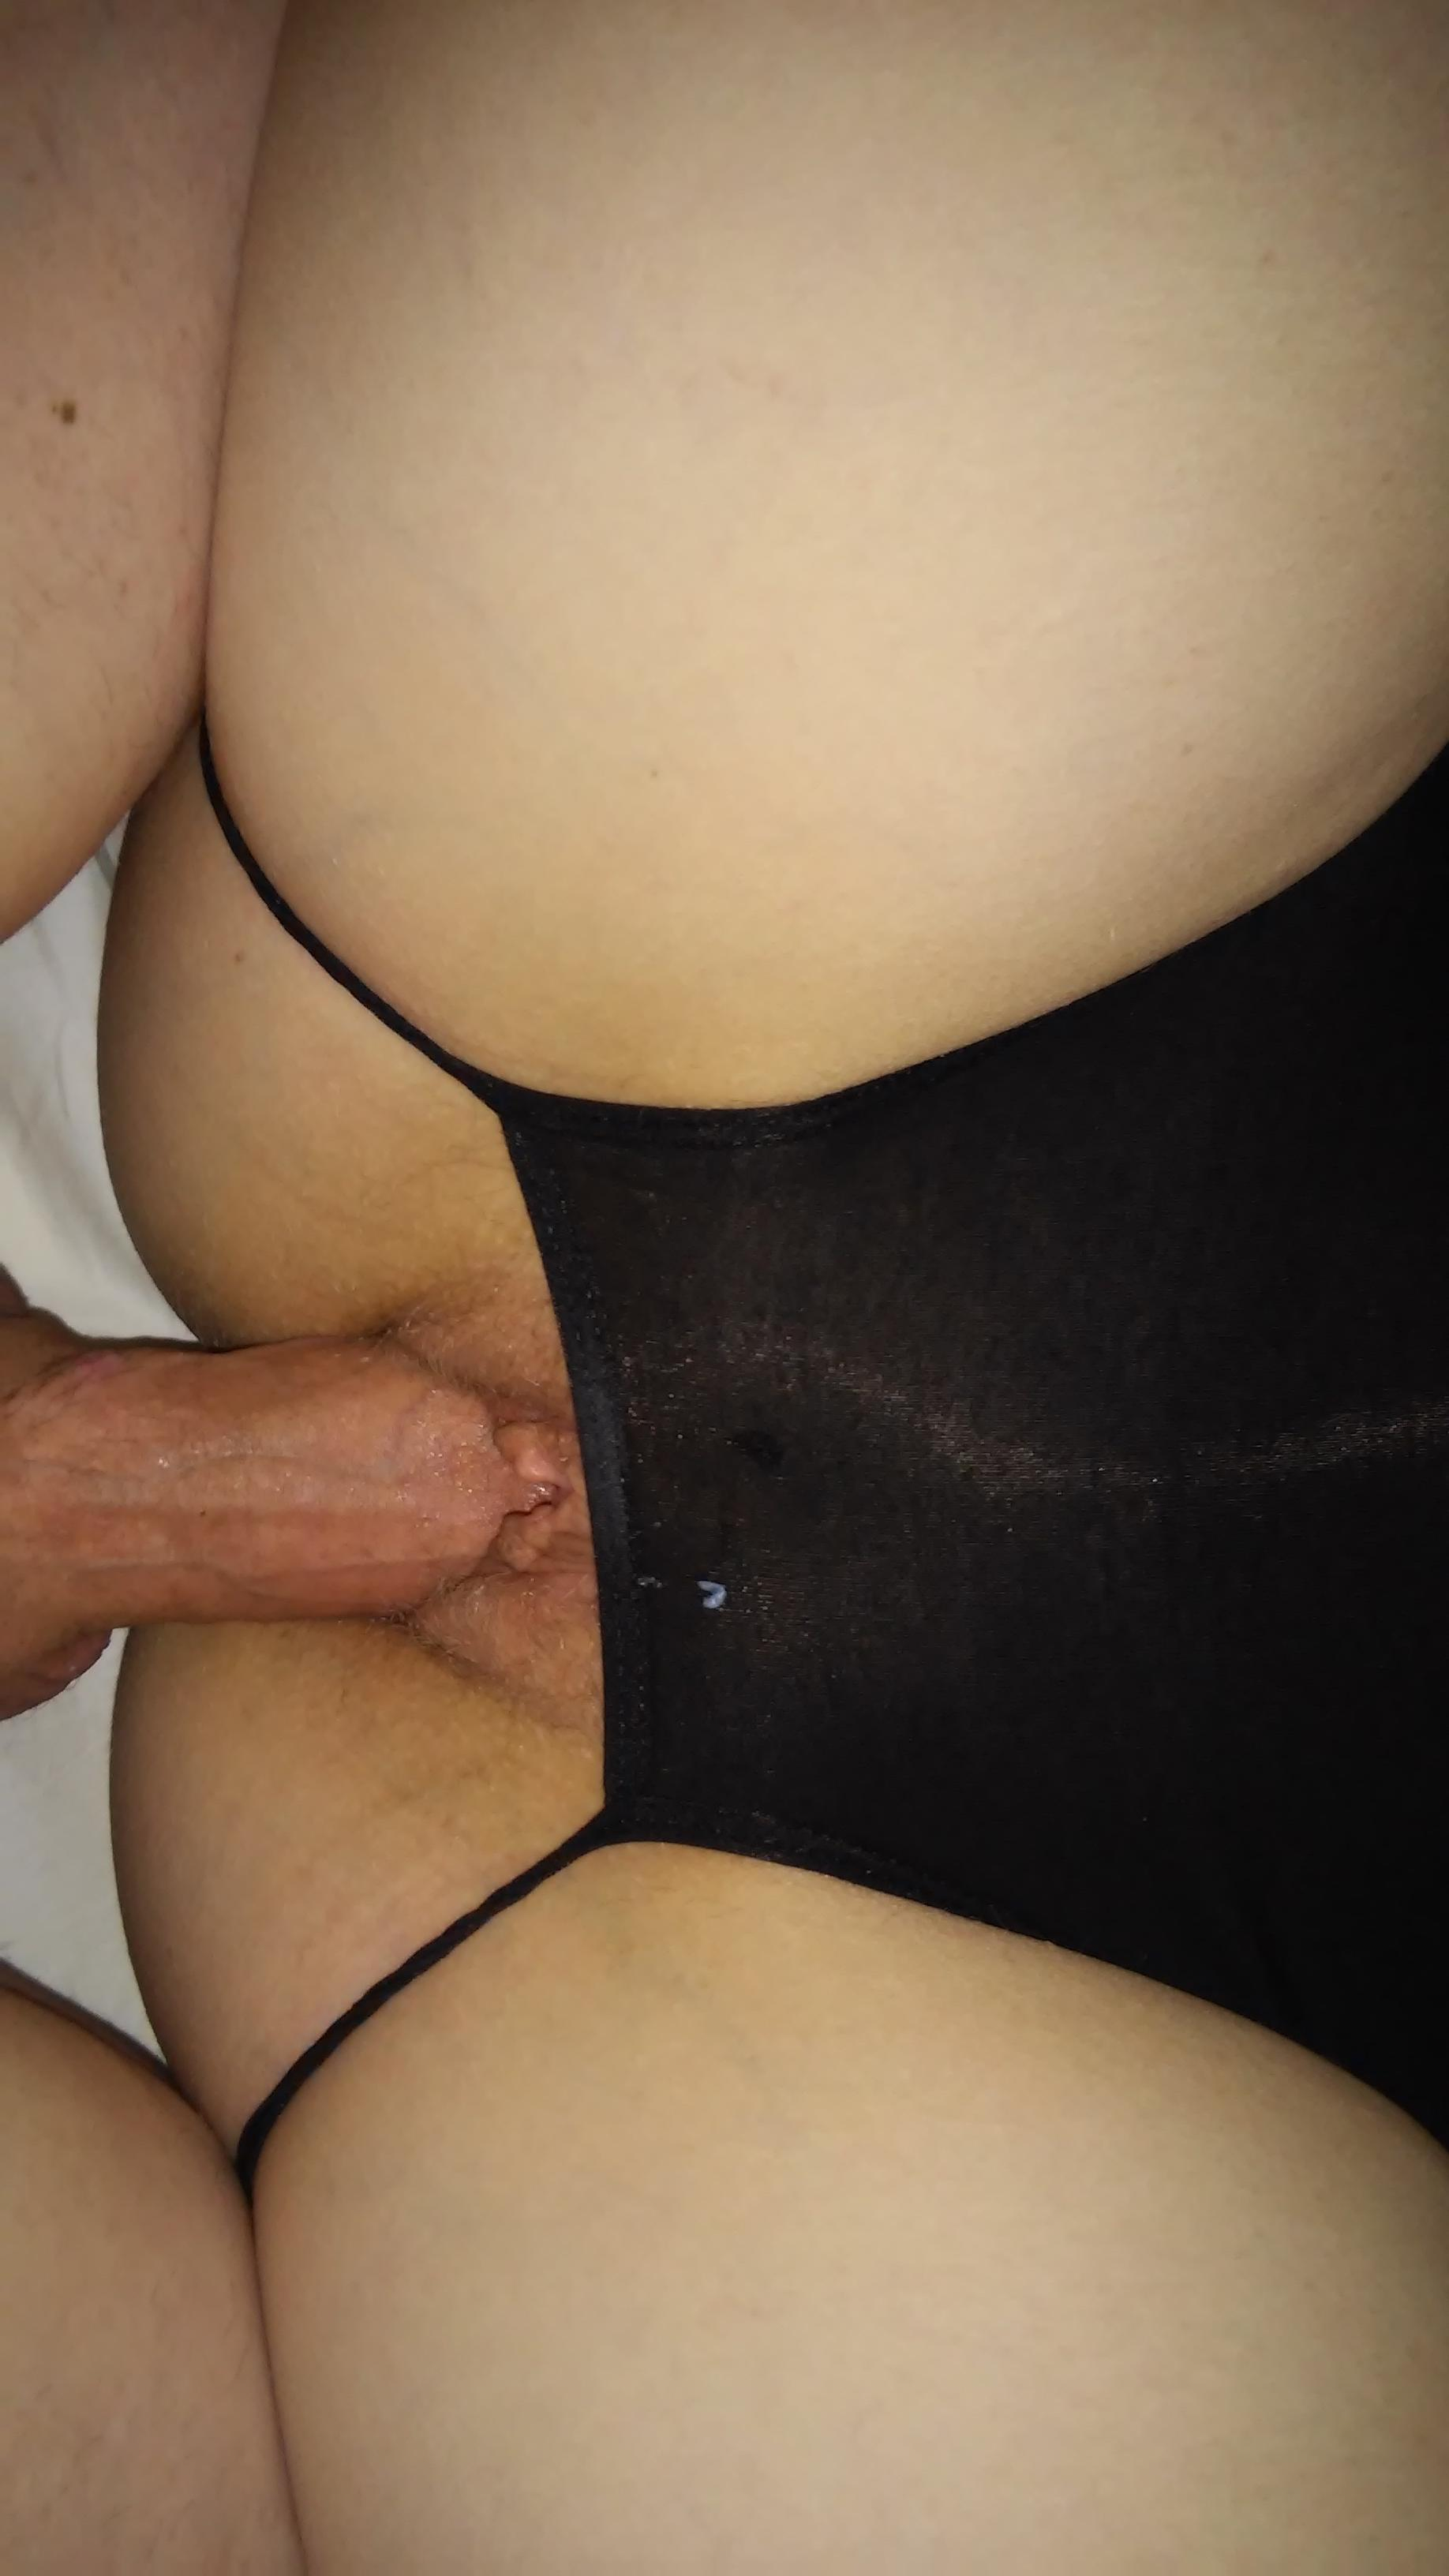 gay par søger par til sex sex massage escort